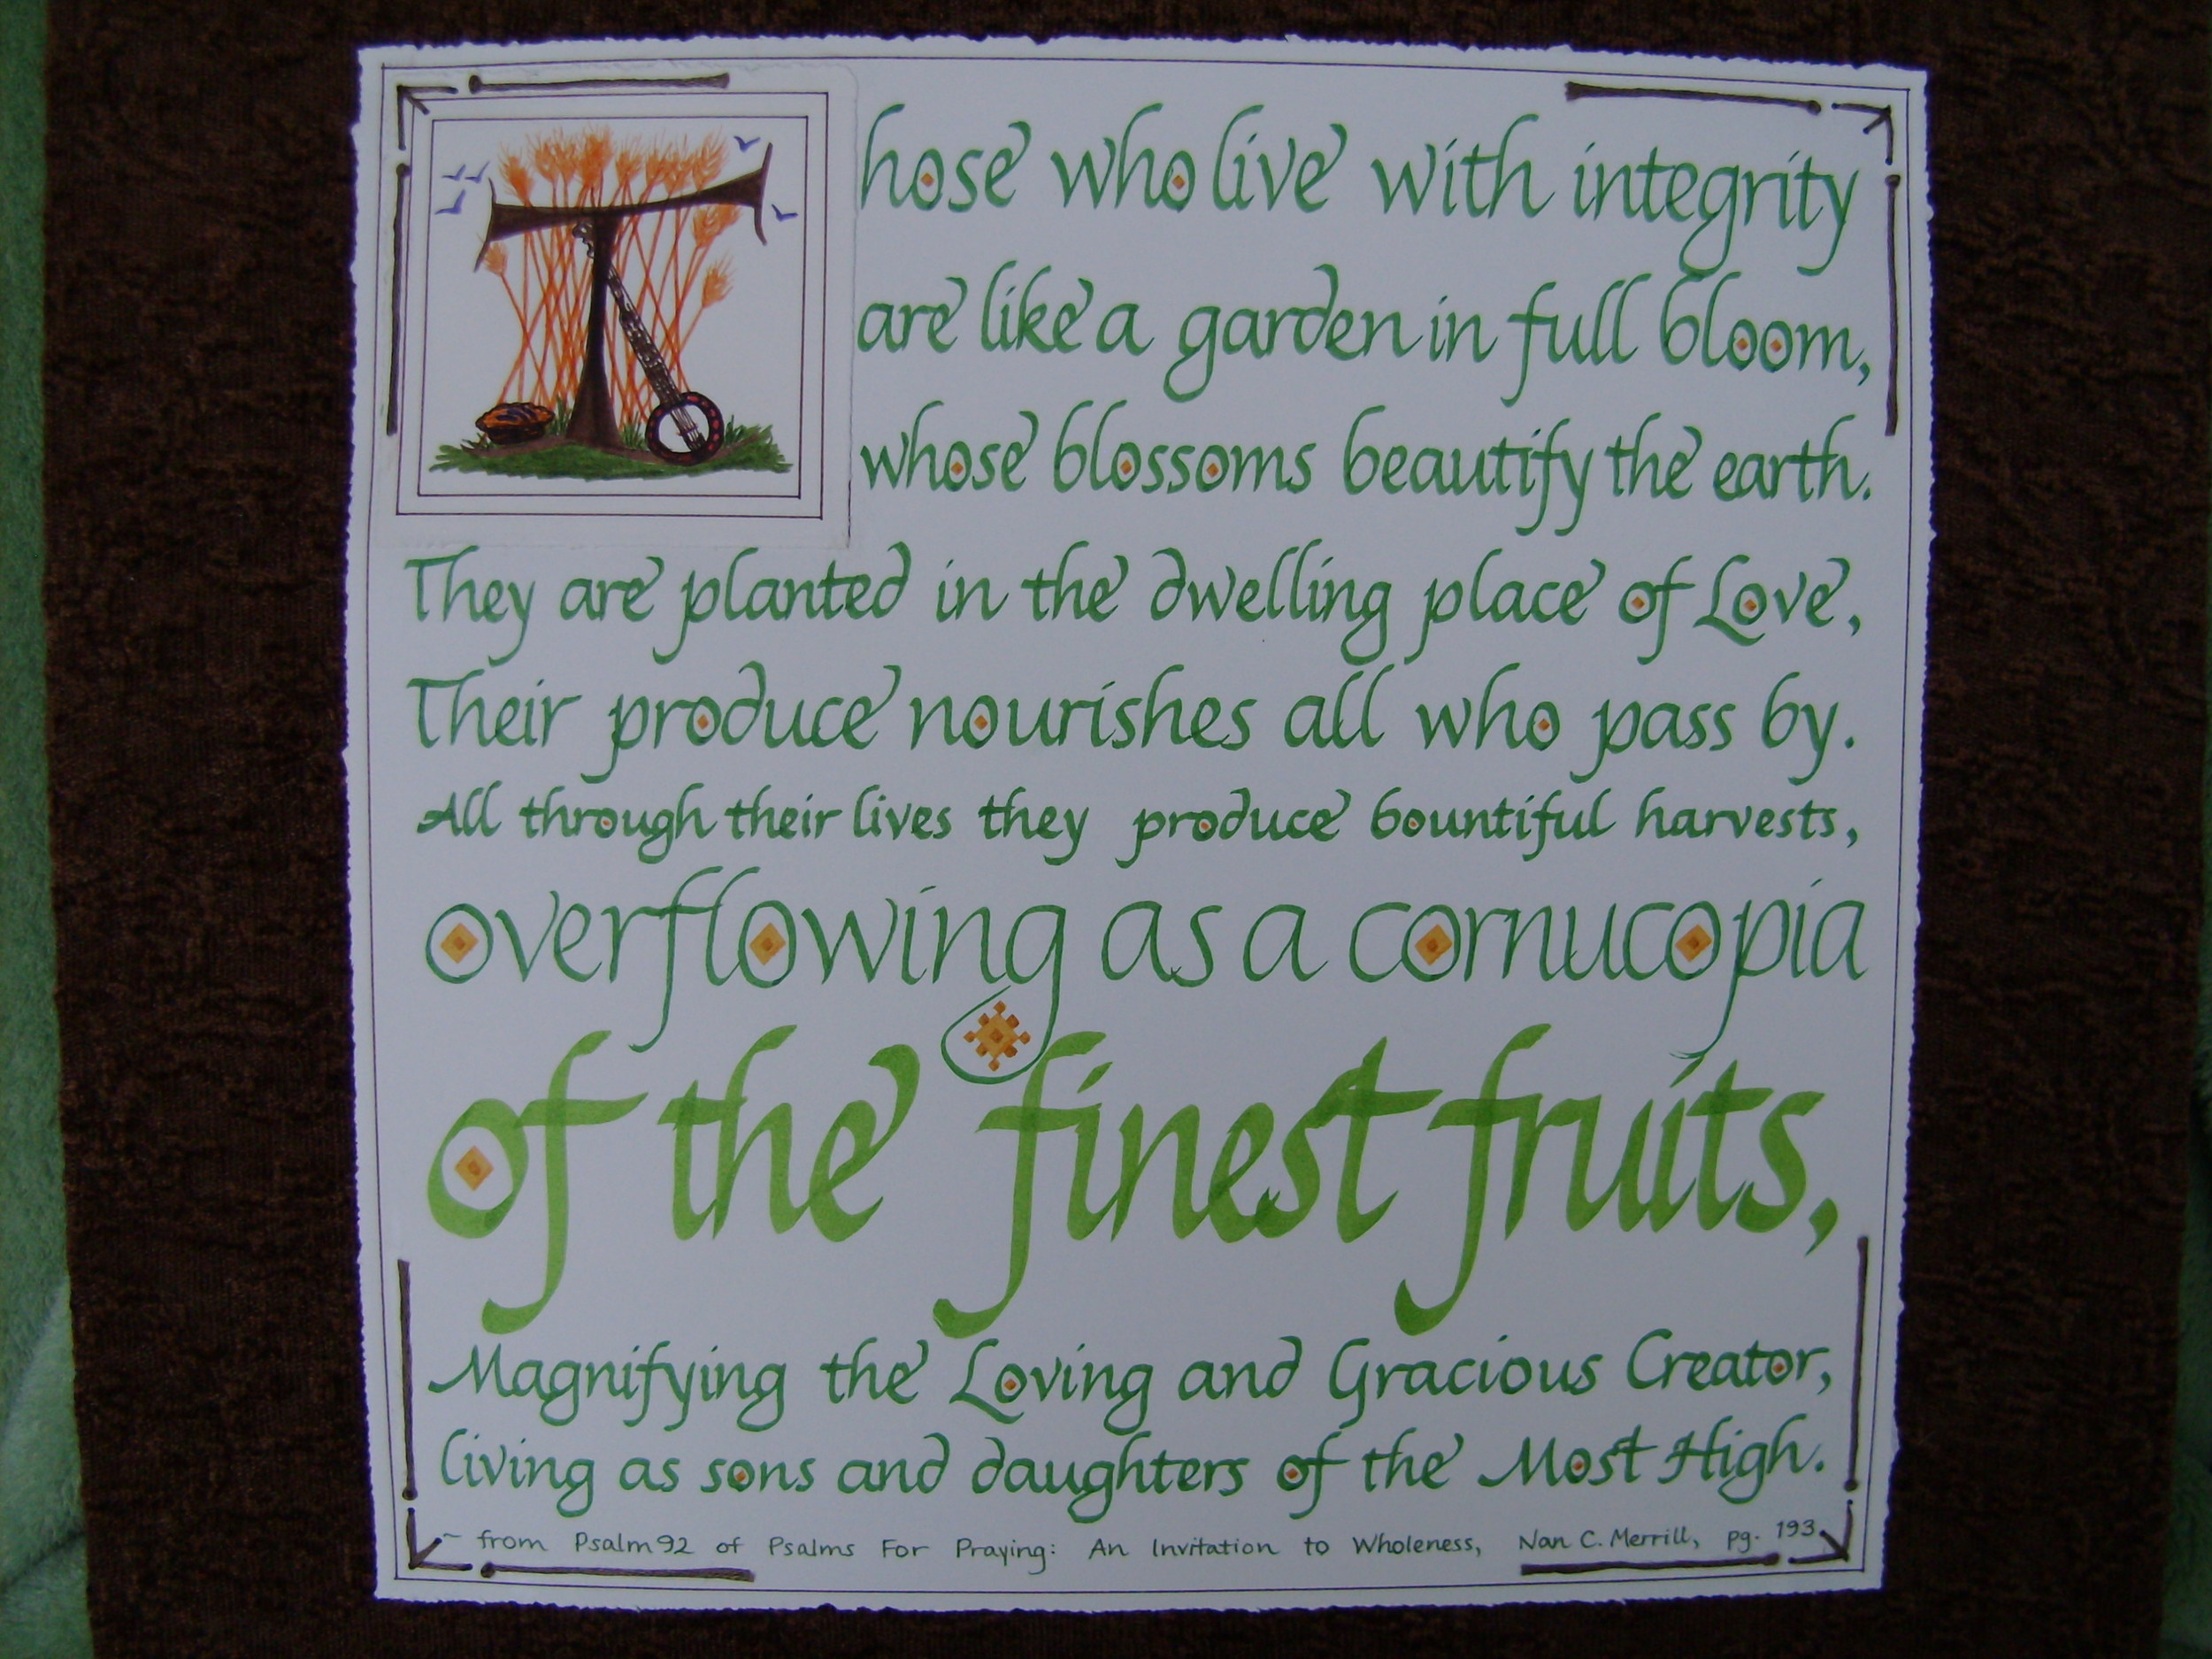 The Finest Fruits